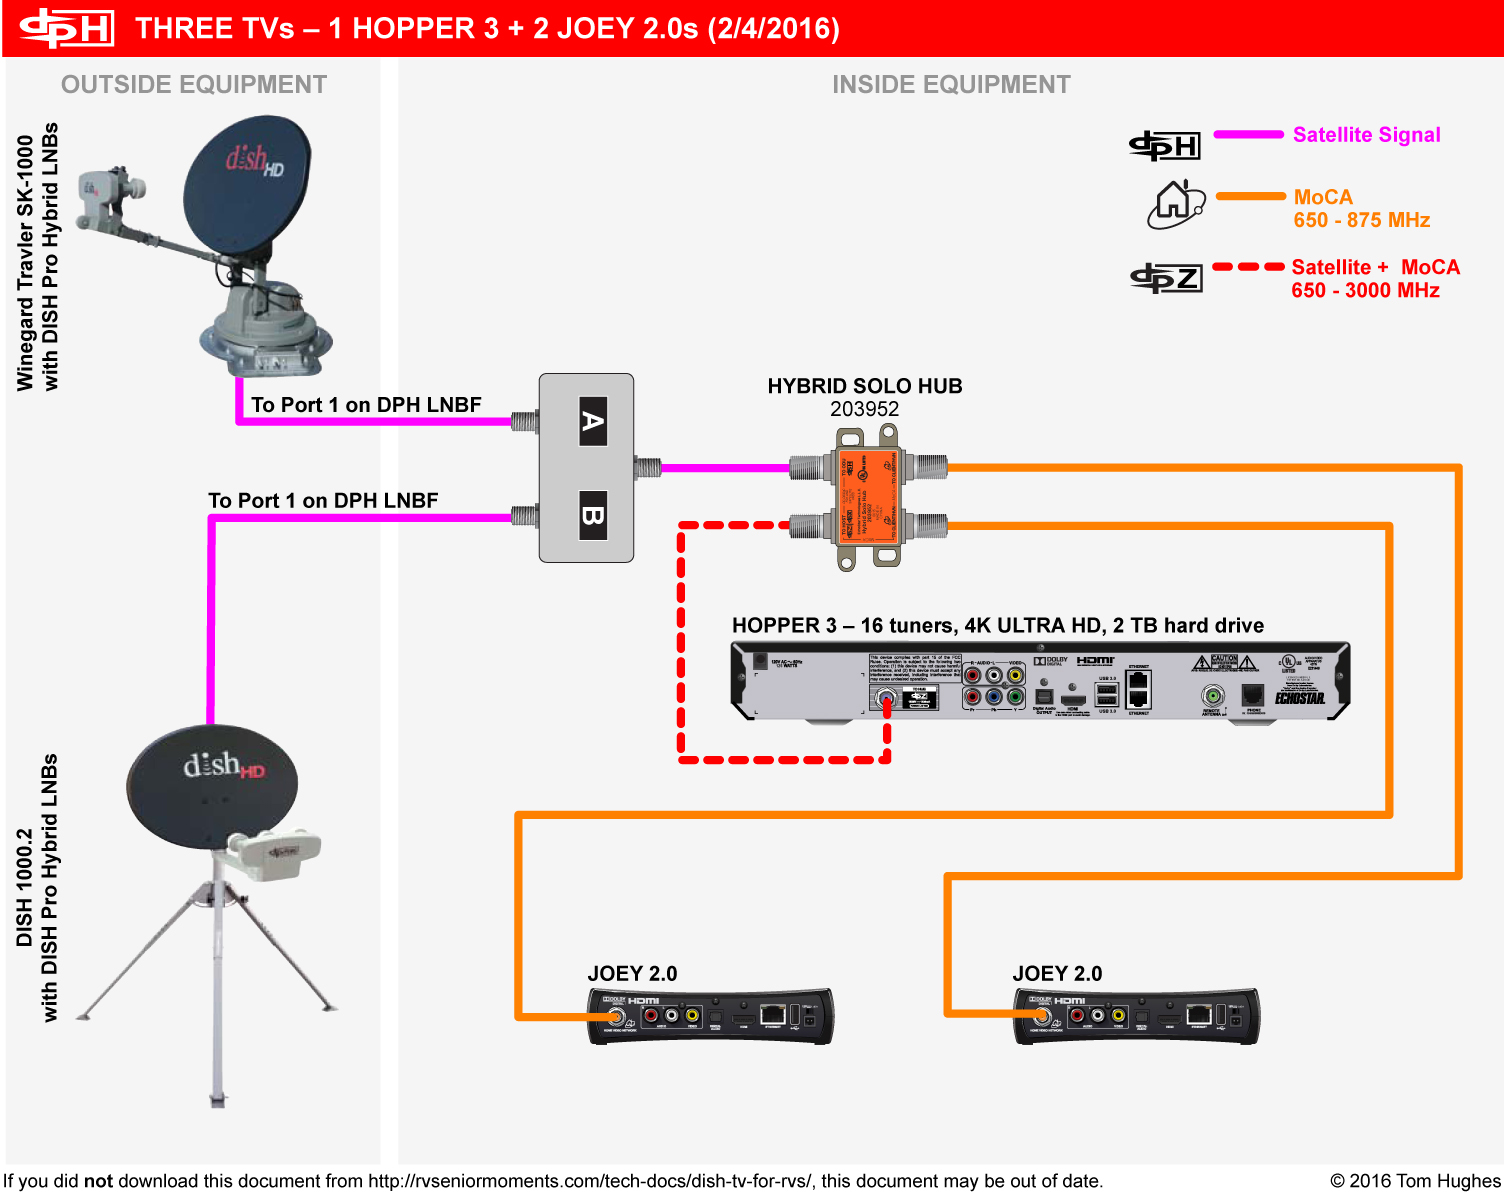 Wiring Diagram For Dish 722 Electrical Diagrams Turbo Hd Network 625 Connections Schematic Cable Dp34 722k